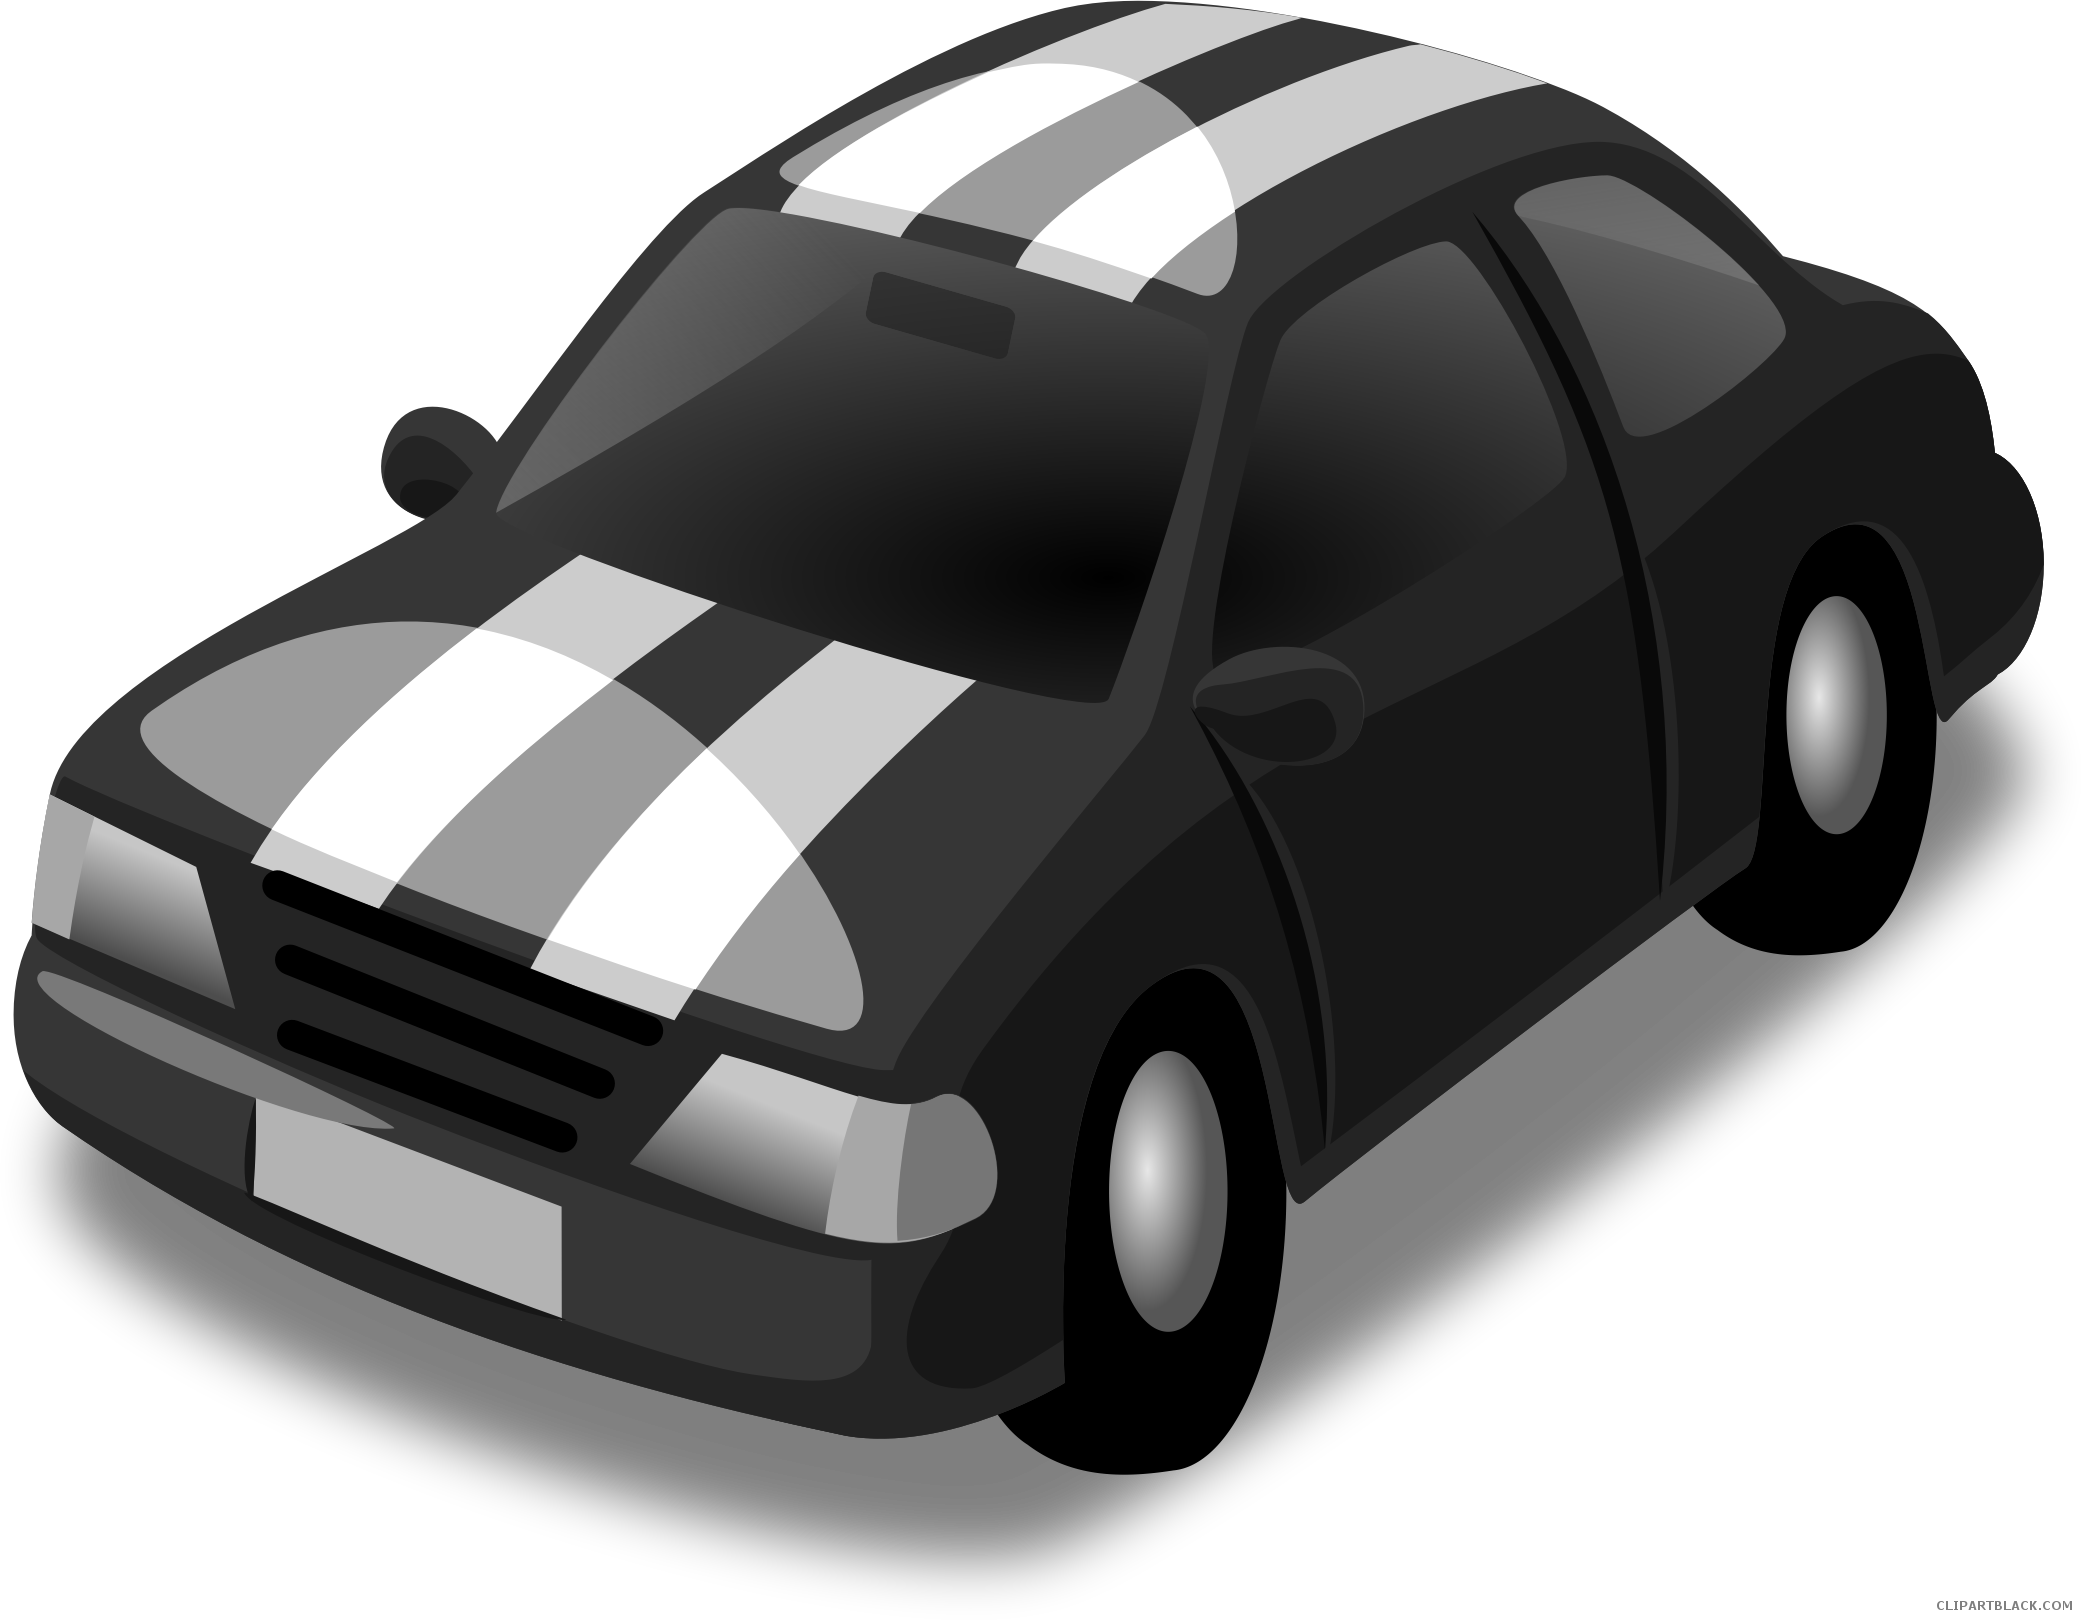 Racing car clipart png transparent library Race Car Clipart - ClipartBlack.com png transparent library